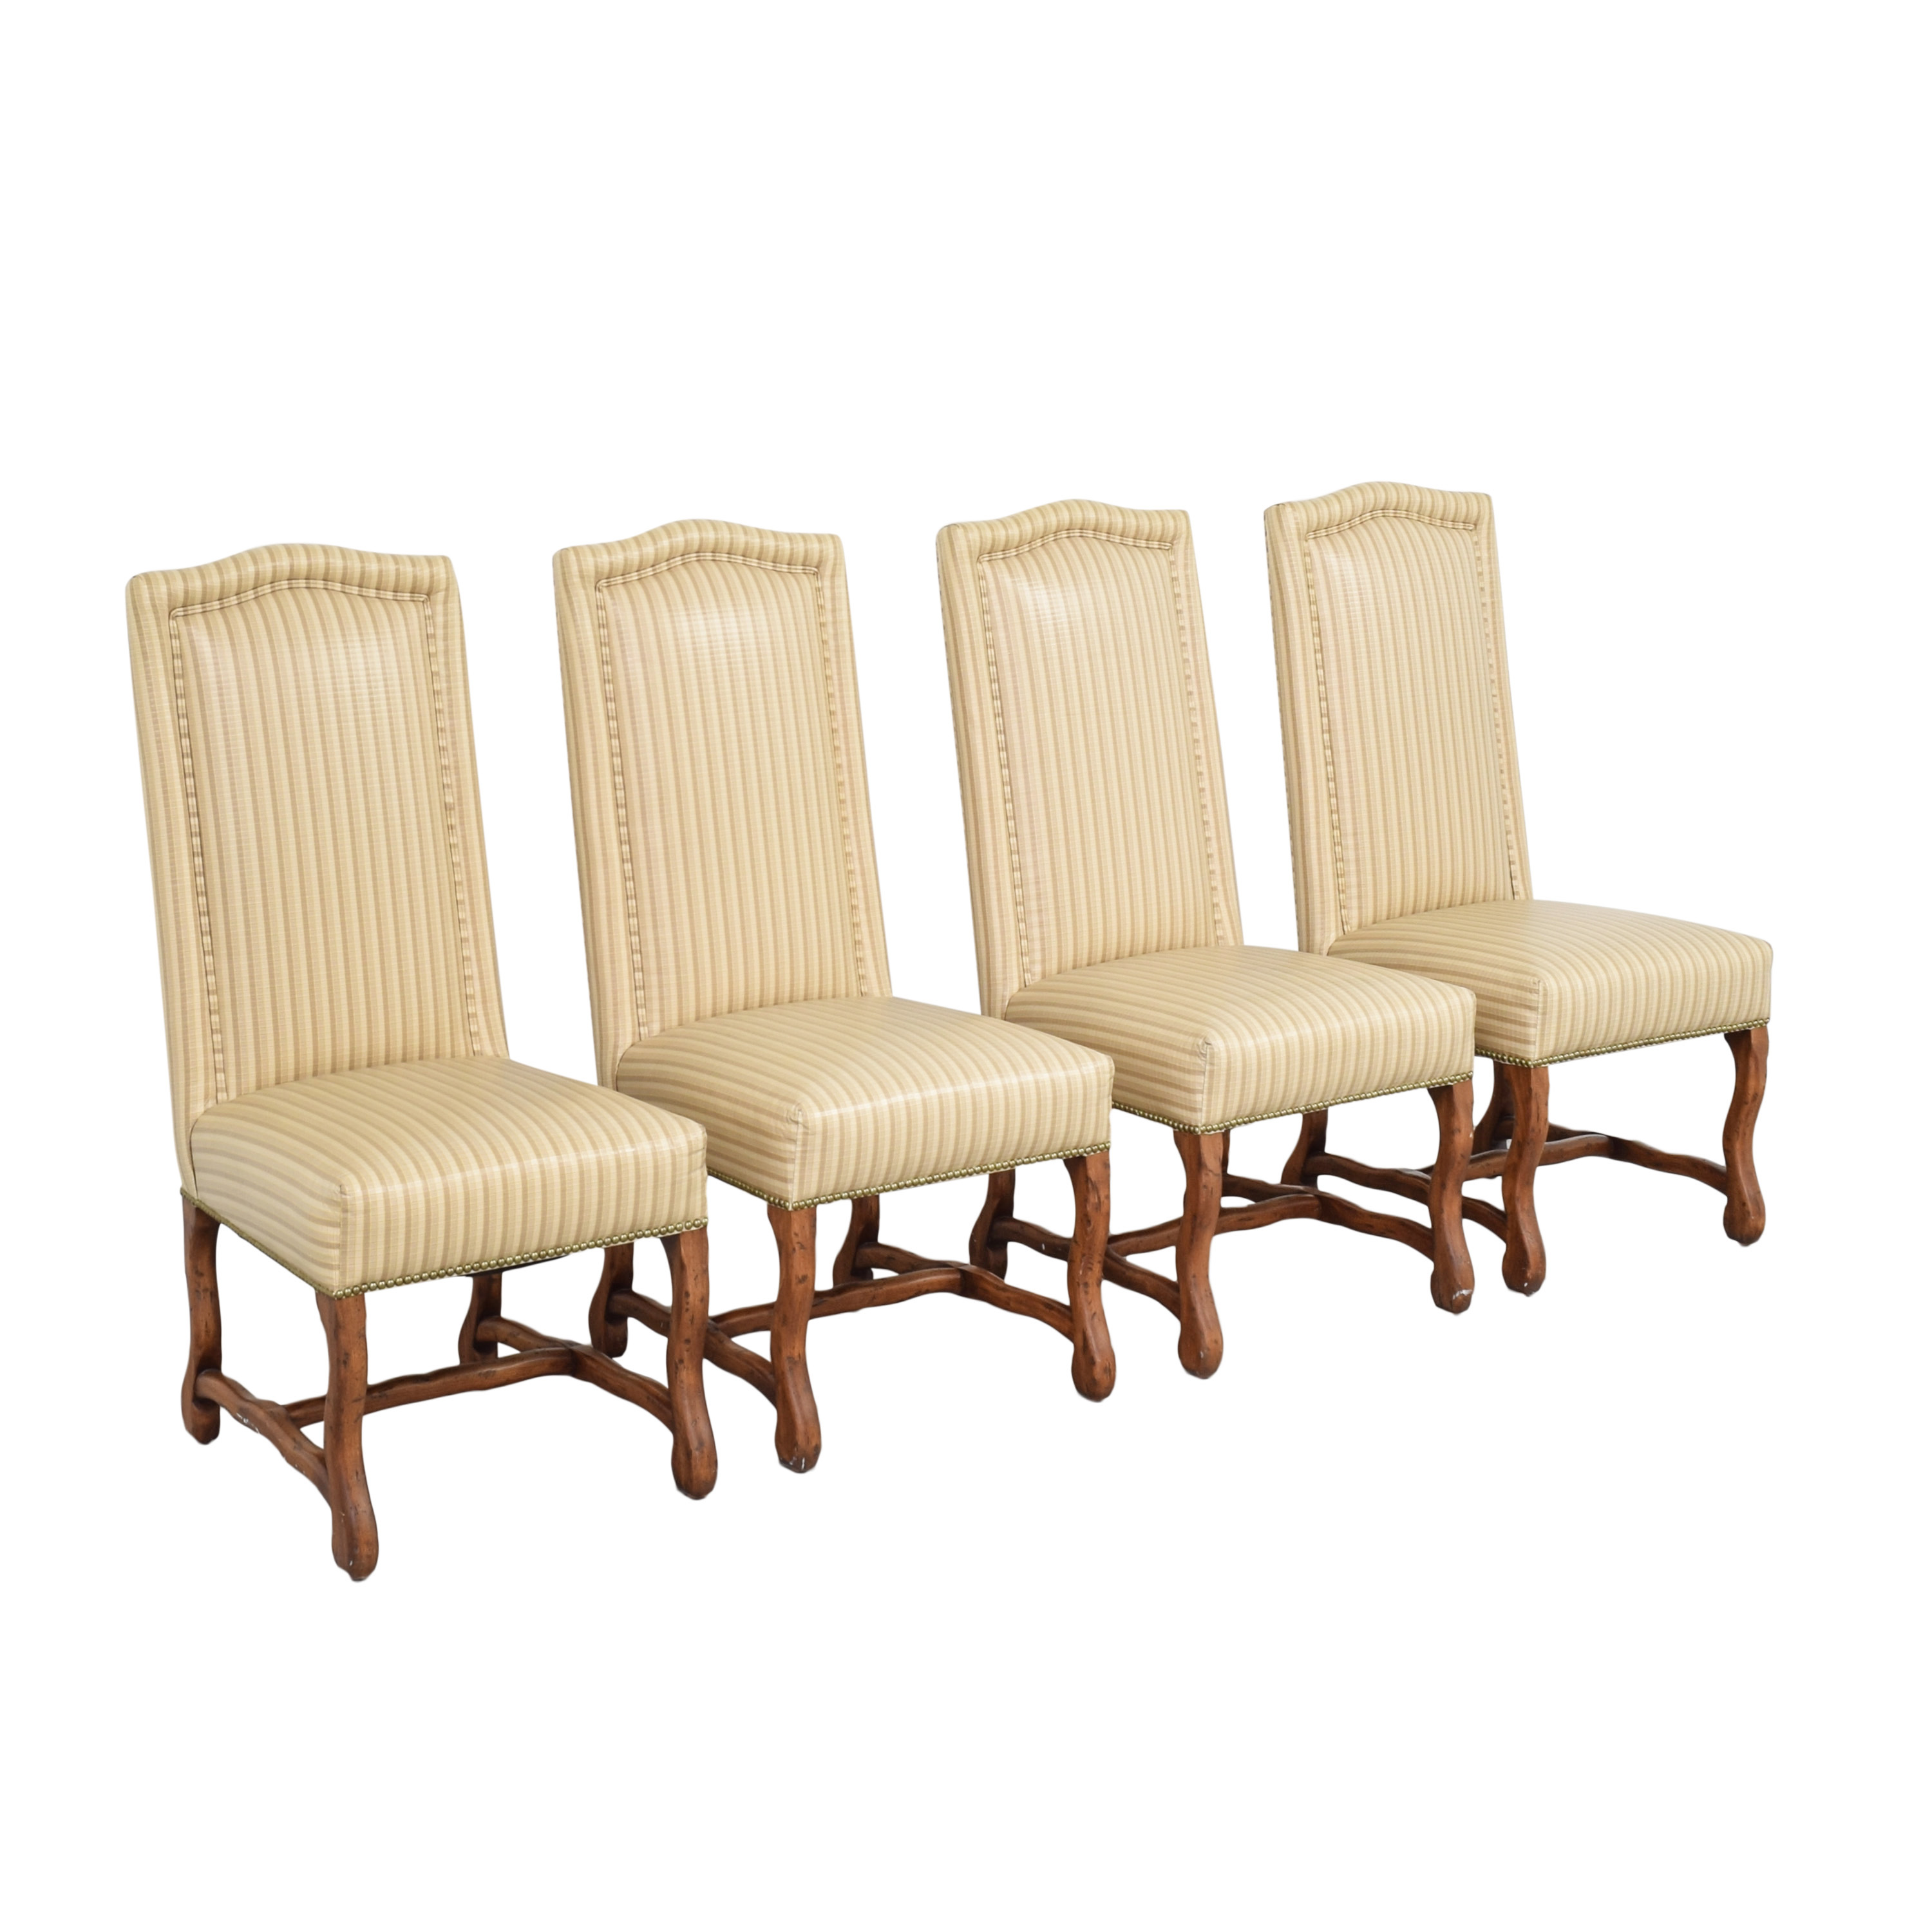 Fremarc Designs Fremarc Designs Provence Side Dining Chairs ma